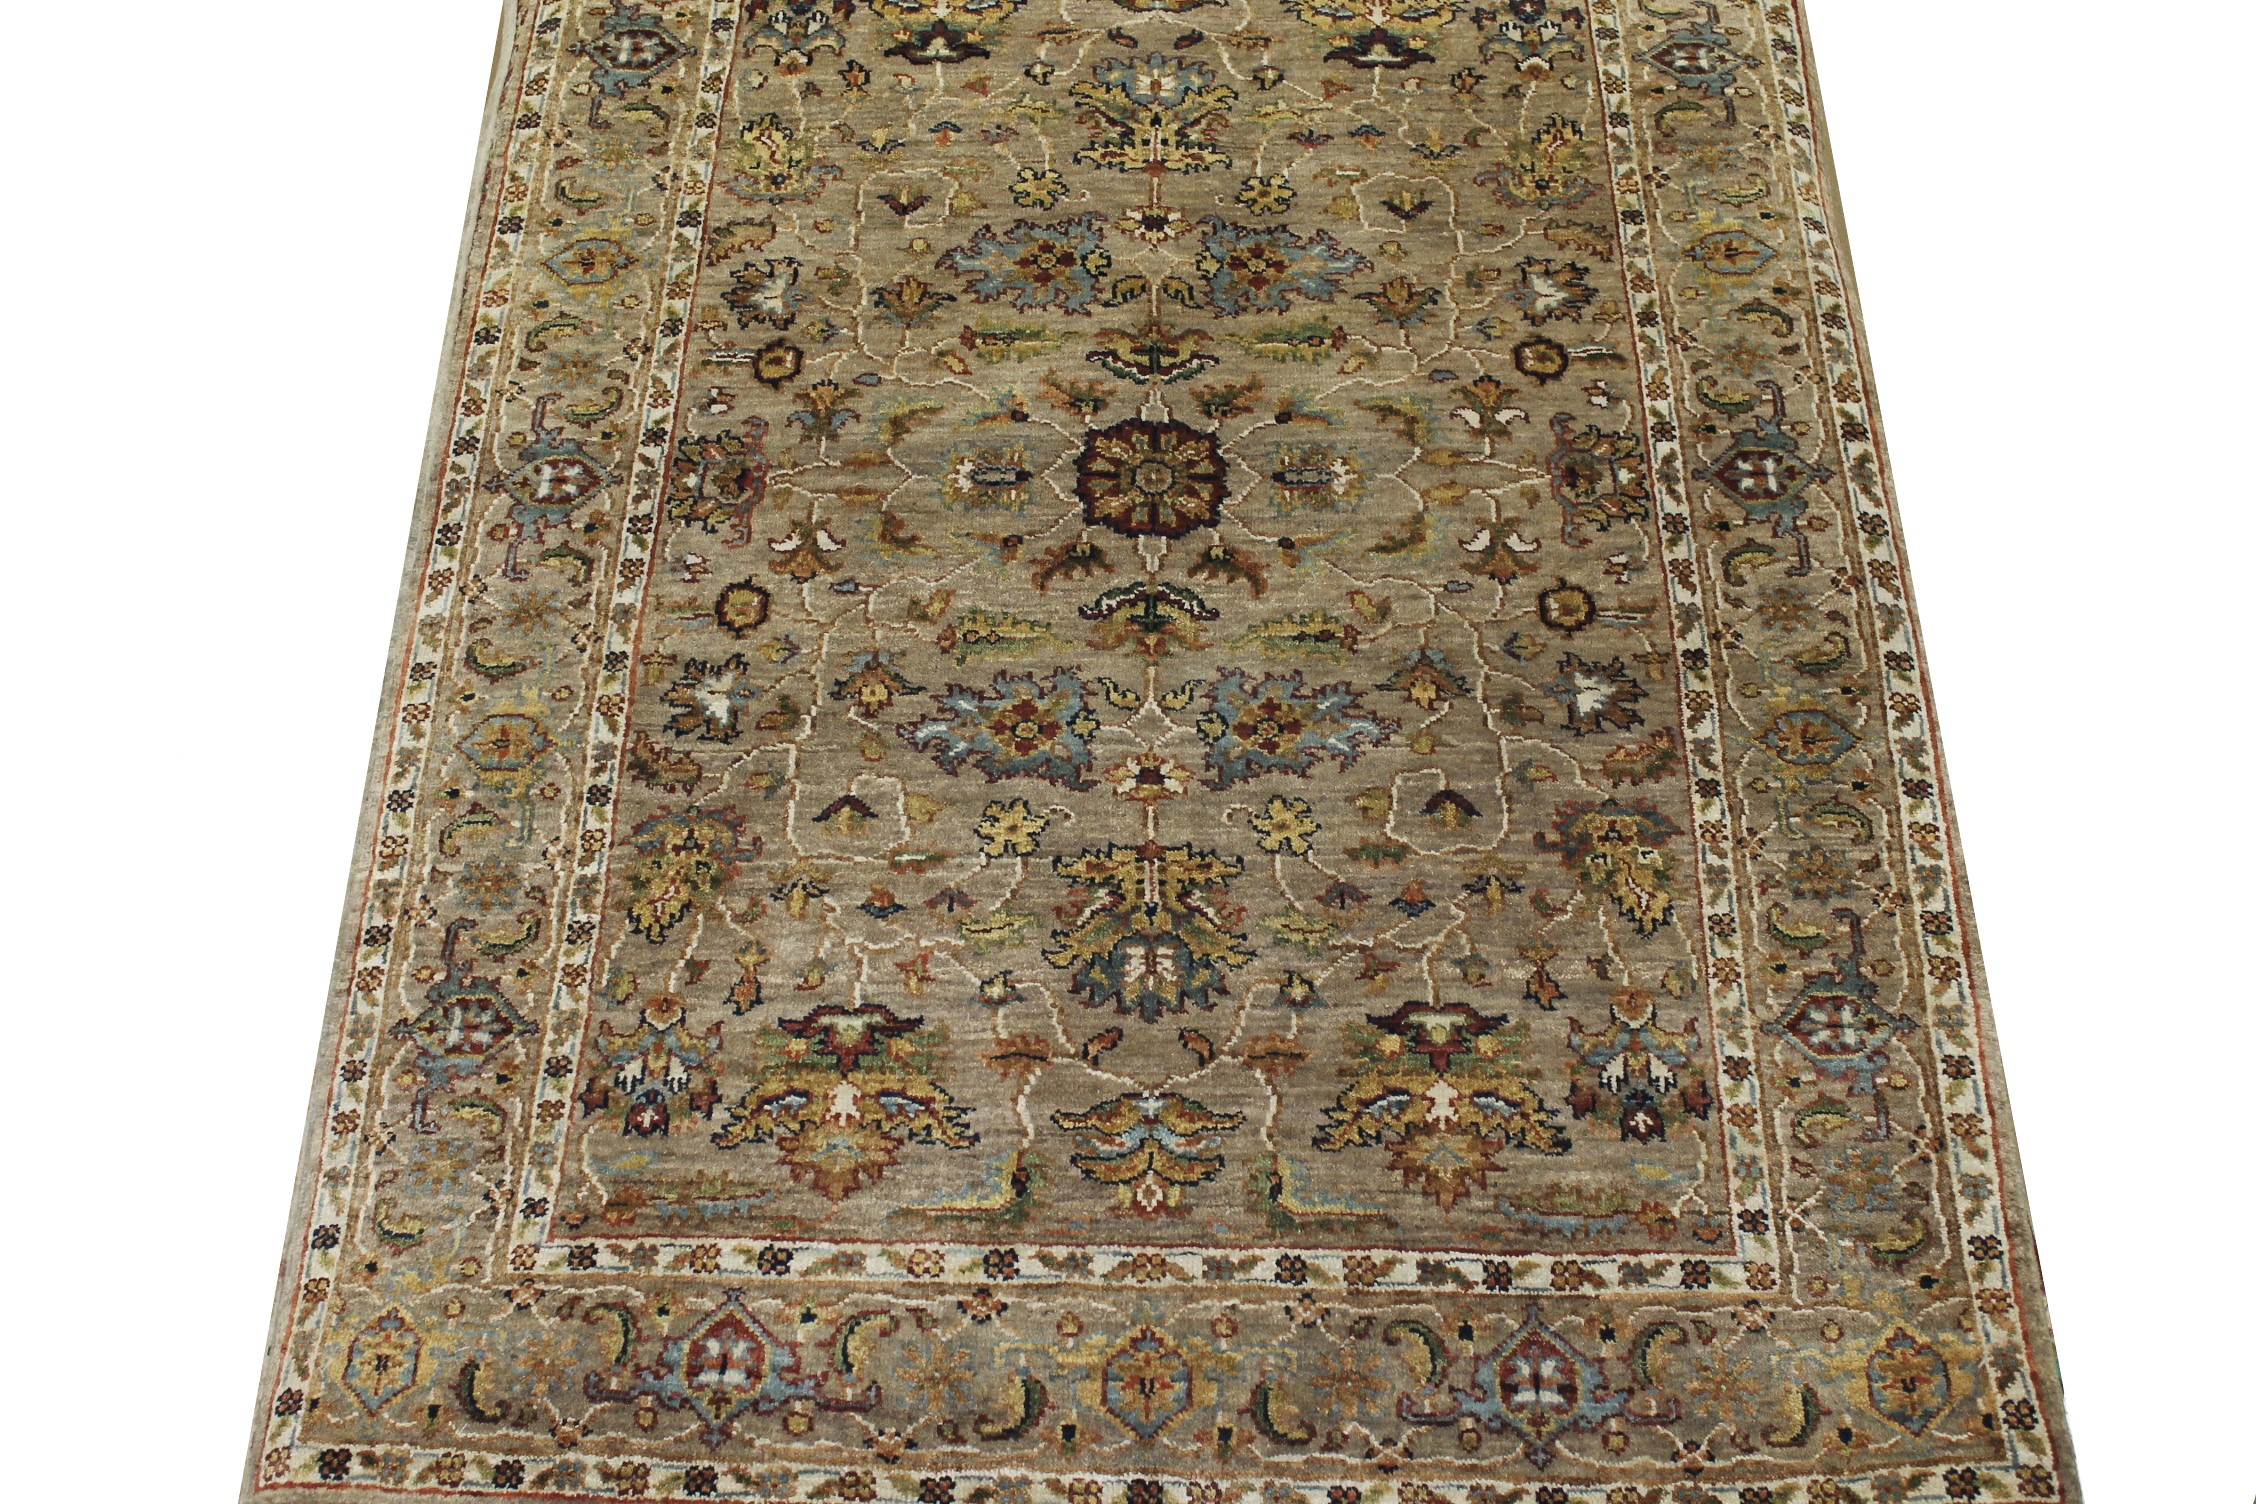 4x6 Antique Revival Hand Knotted Wool Area Rug - MR018796